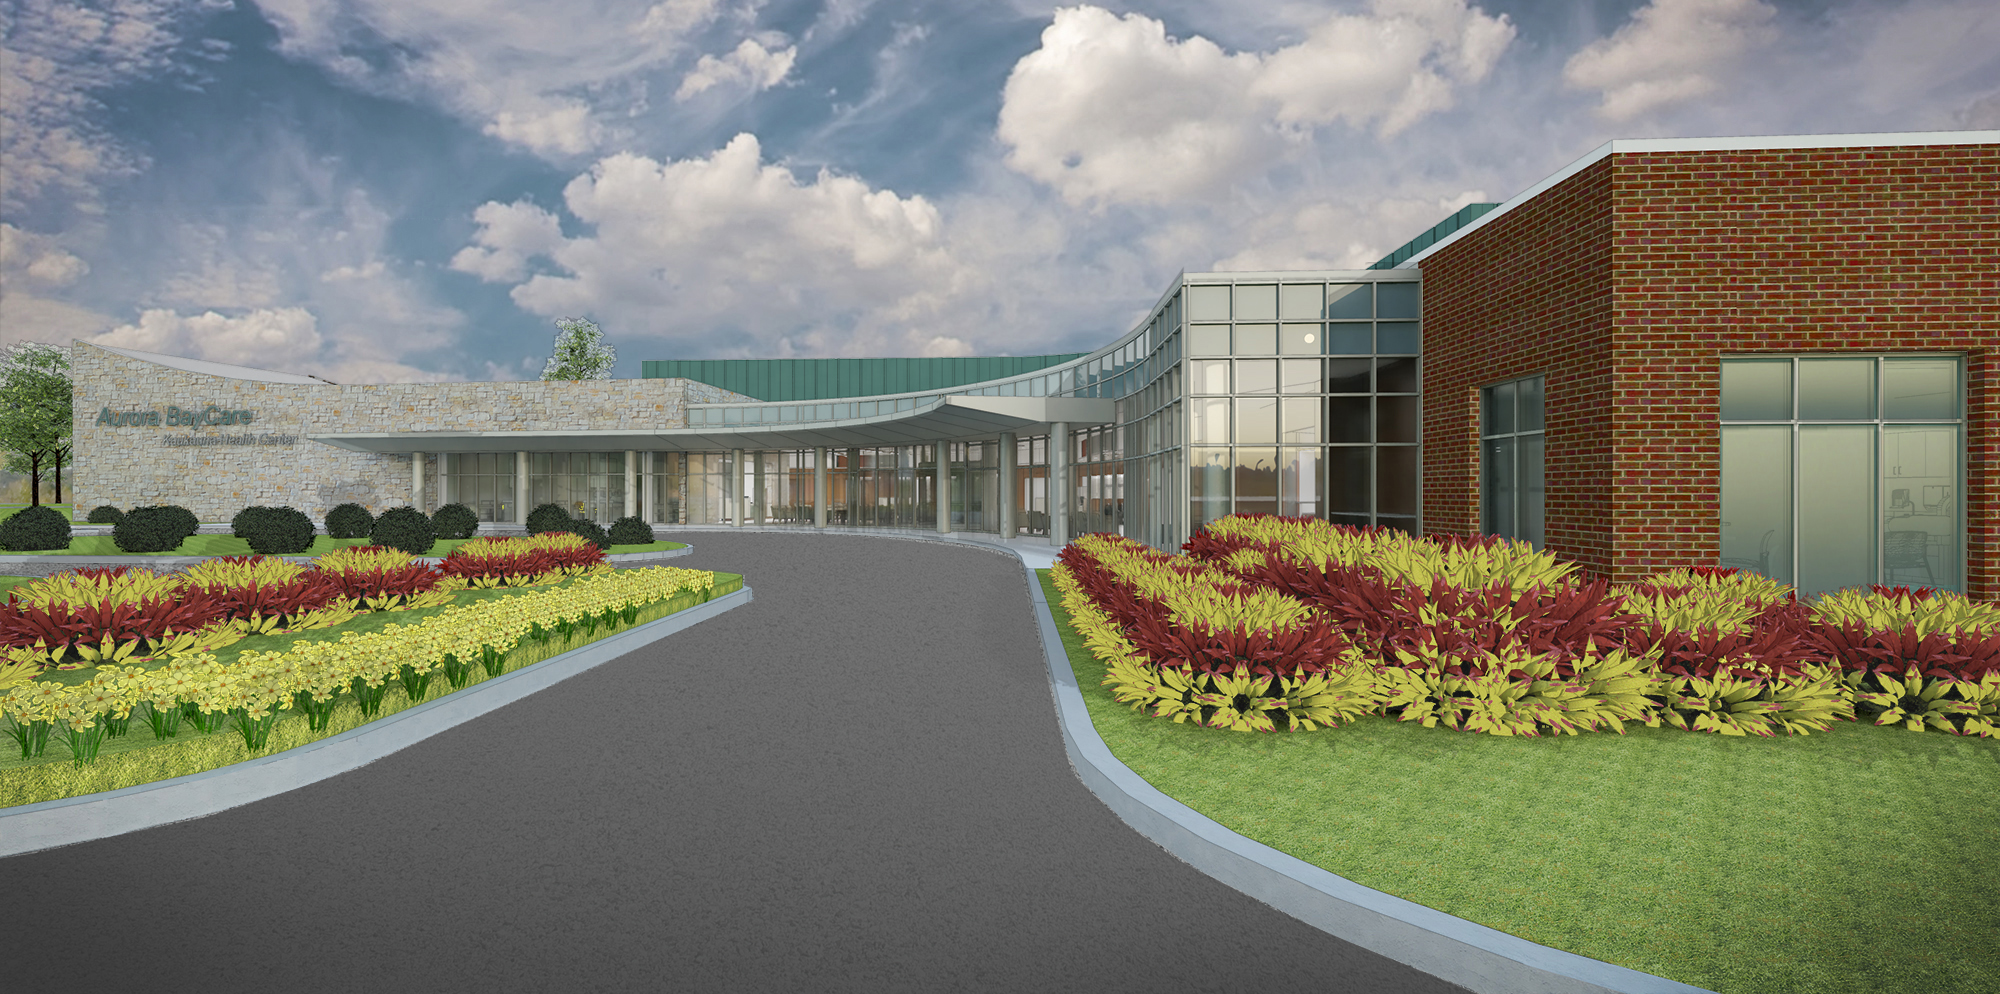 Aurora Baycare Announces New Healthcare Facility In Kaukauna